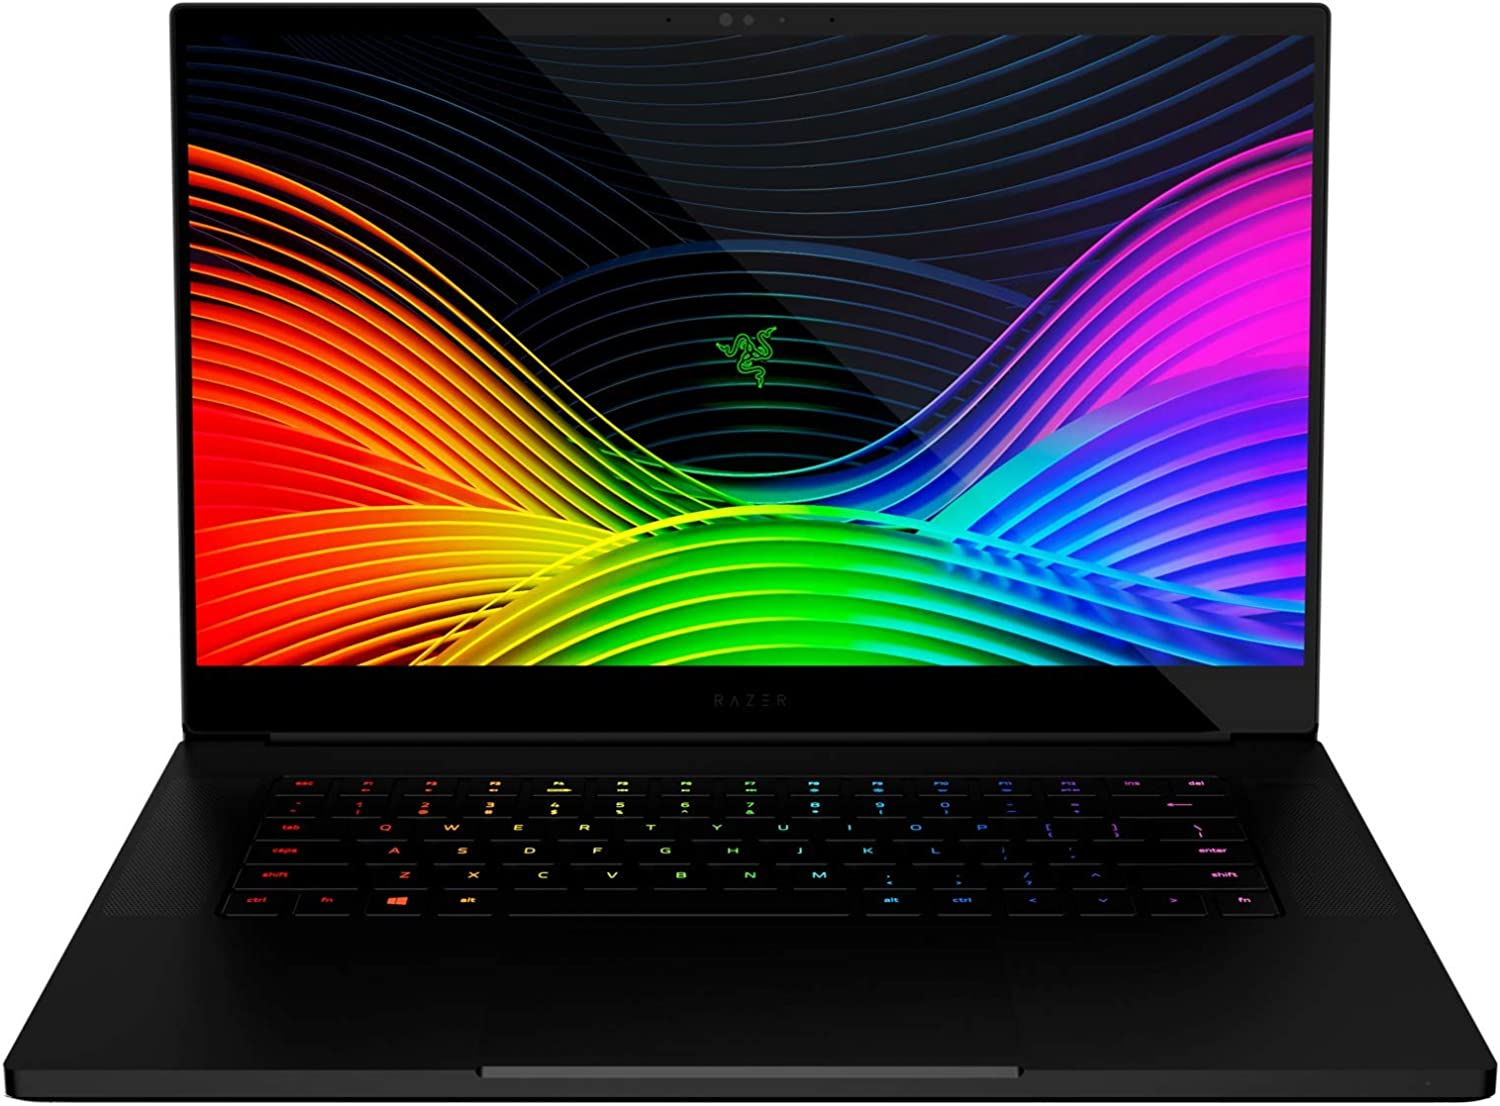 Razer Blade 15 Gaming Laptop 2019: Intel Core i7-9750H 6 Core, NVIDIA GeForce RTX 2080 Max-Q, 15.6